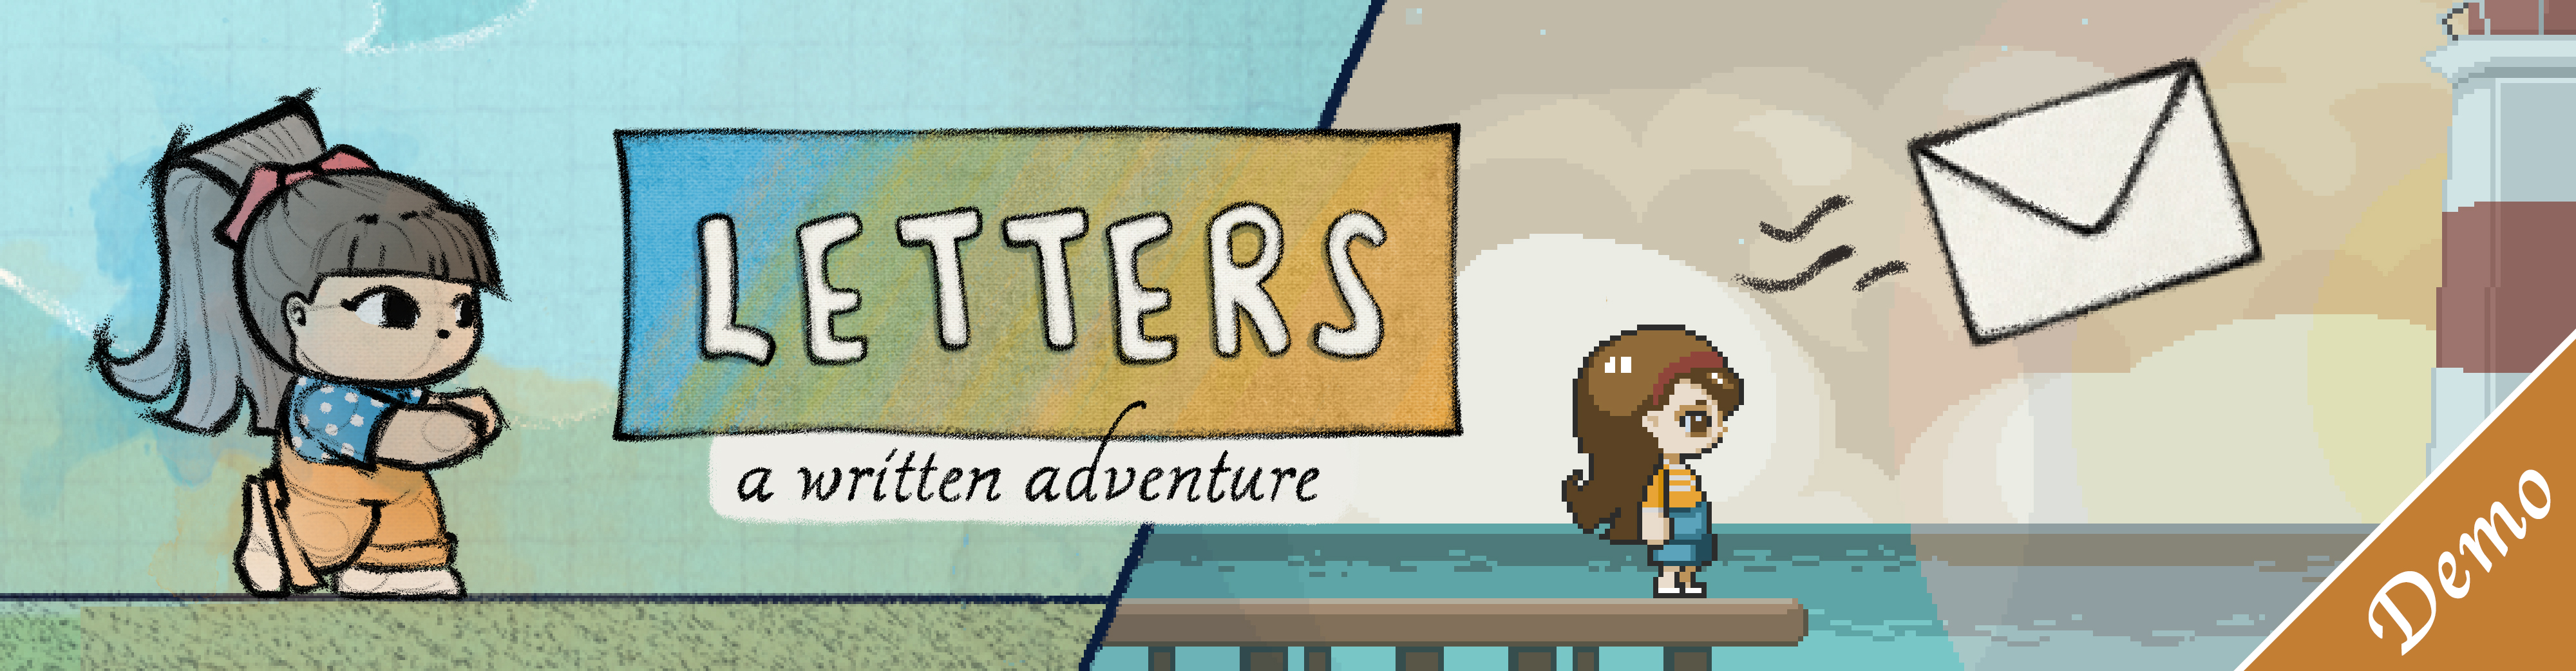 "Demo of ""Letters - a written adventure"""